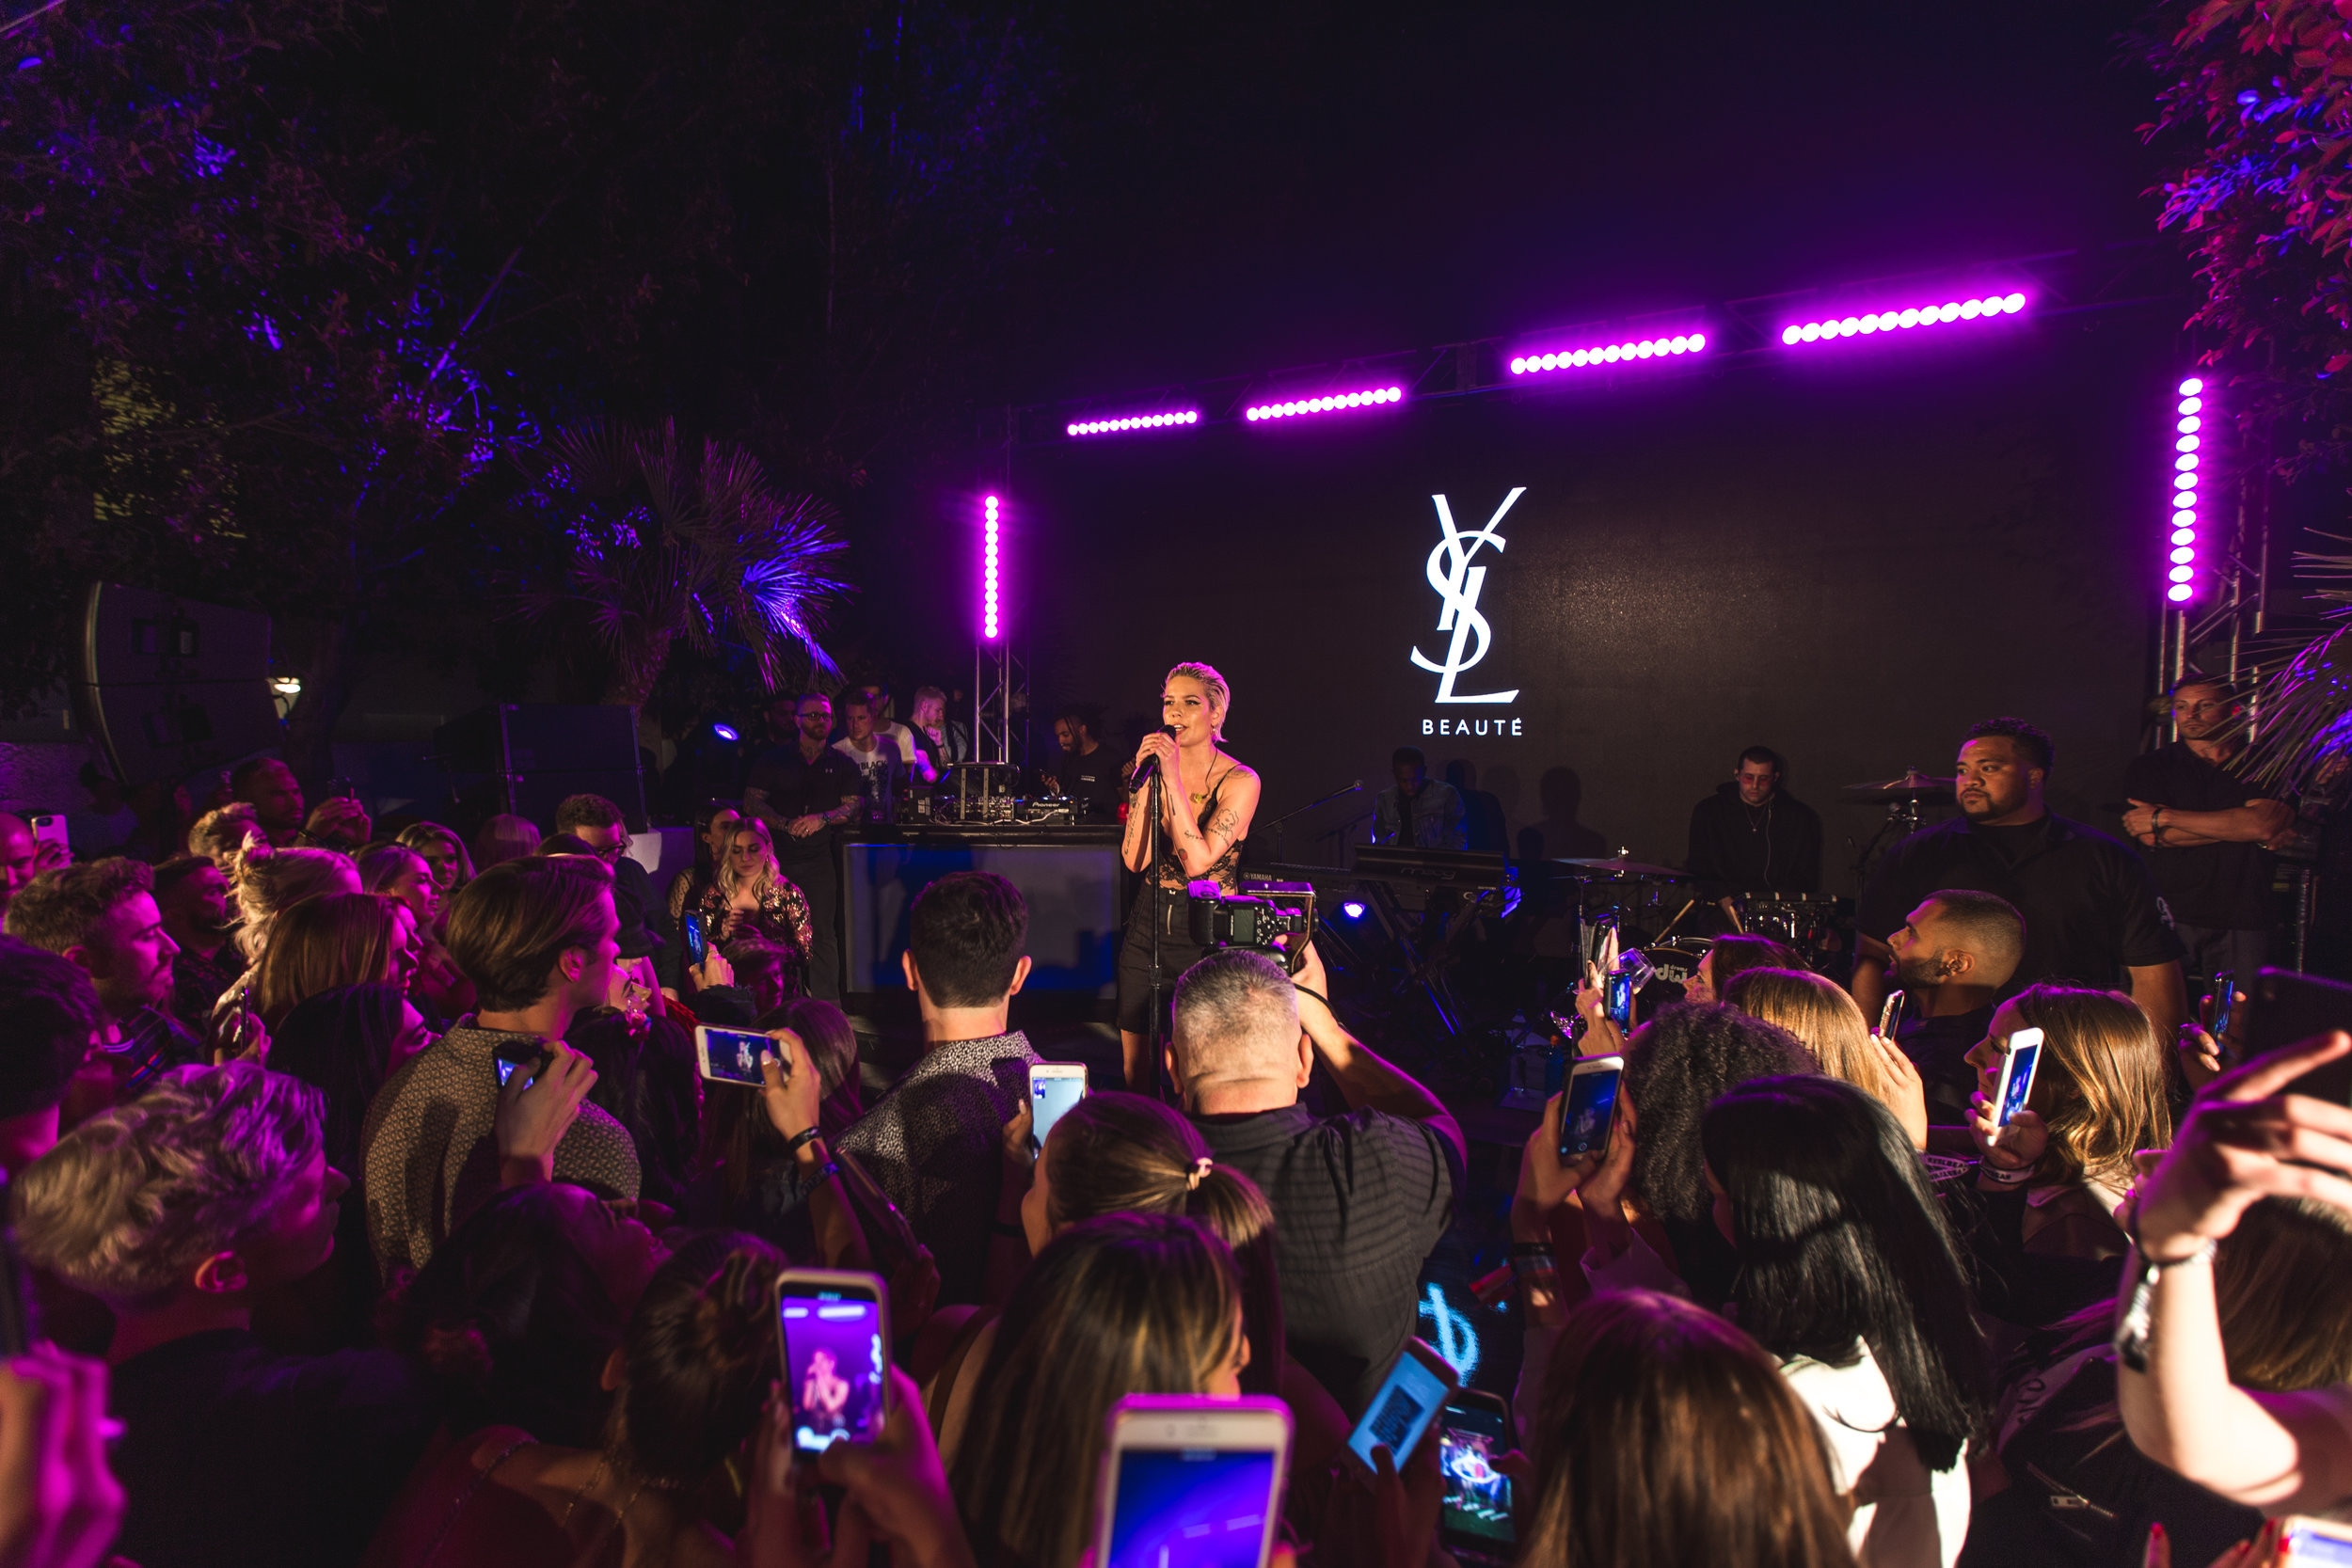 YSL Coachella Beauty Festival with Halsey  Palm Springs